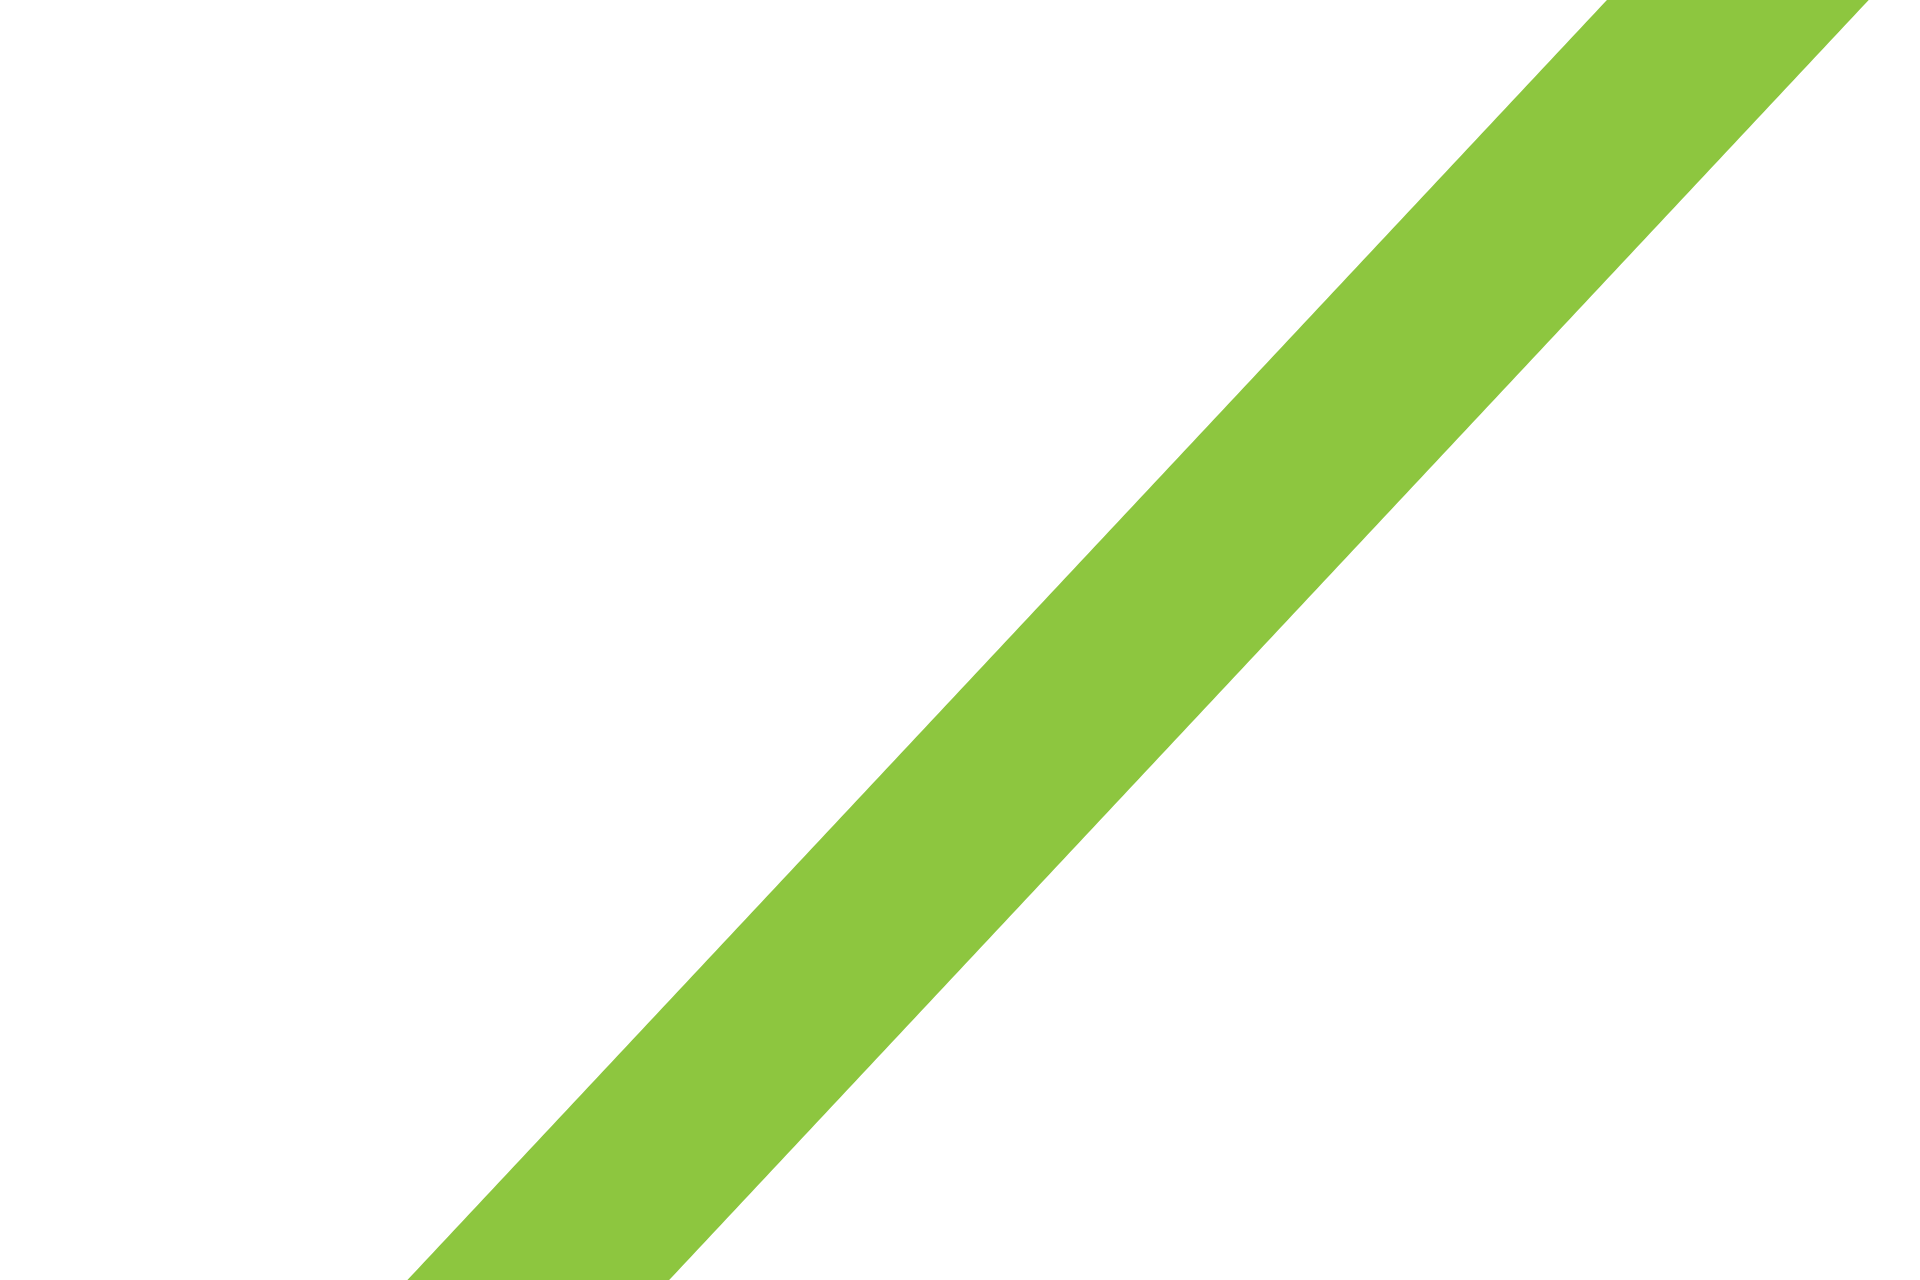 Light Green Strip